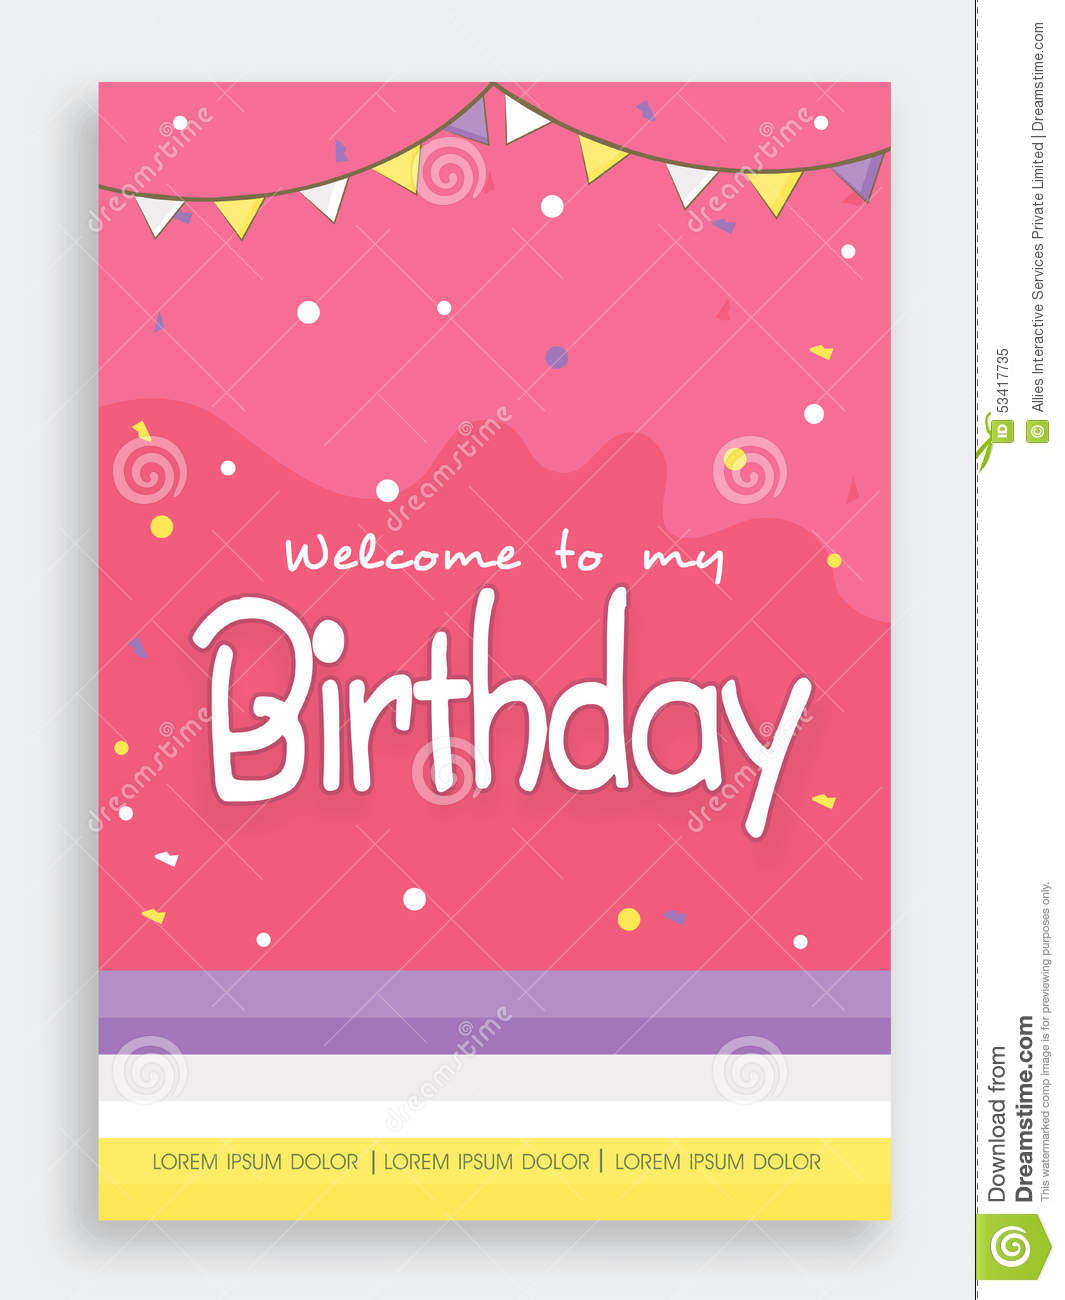 Invitation Card Design For Birthday Party Stock